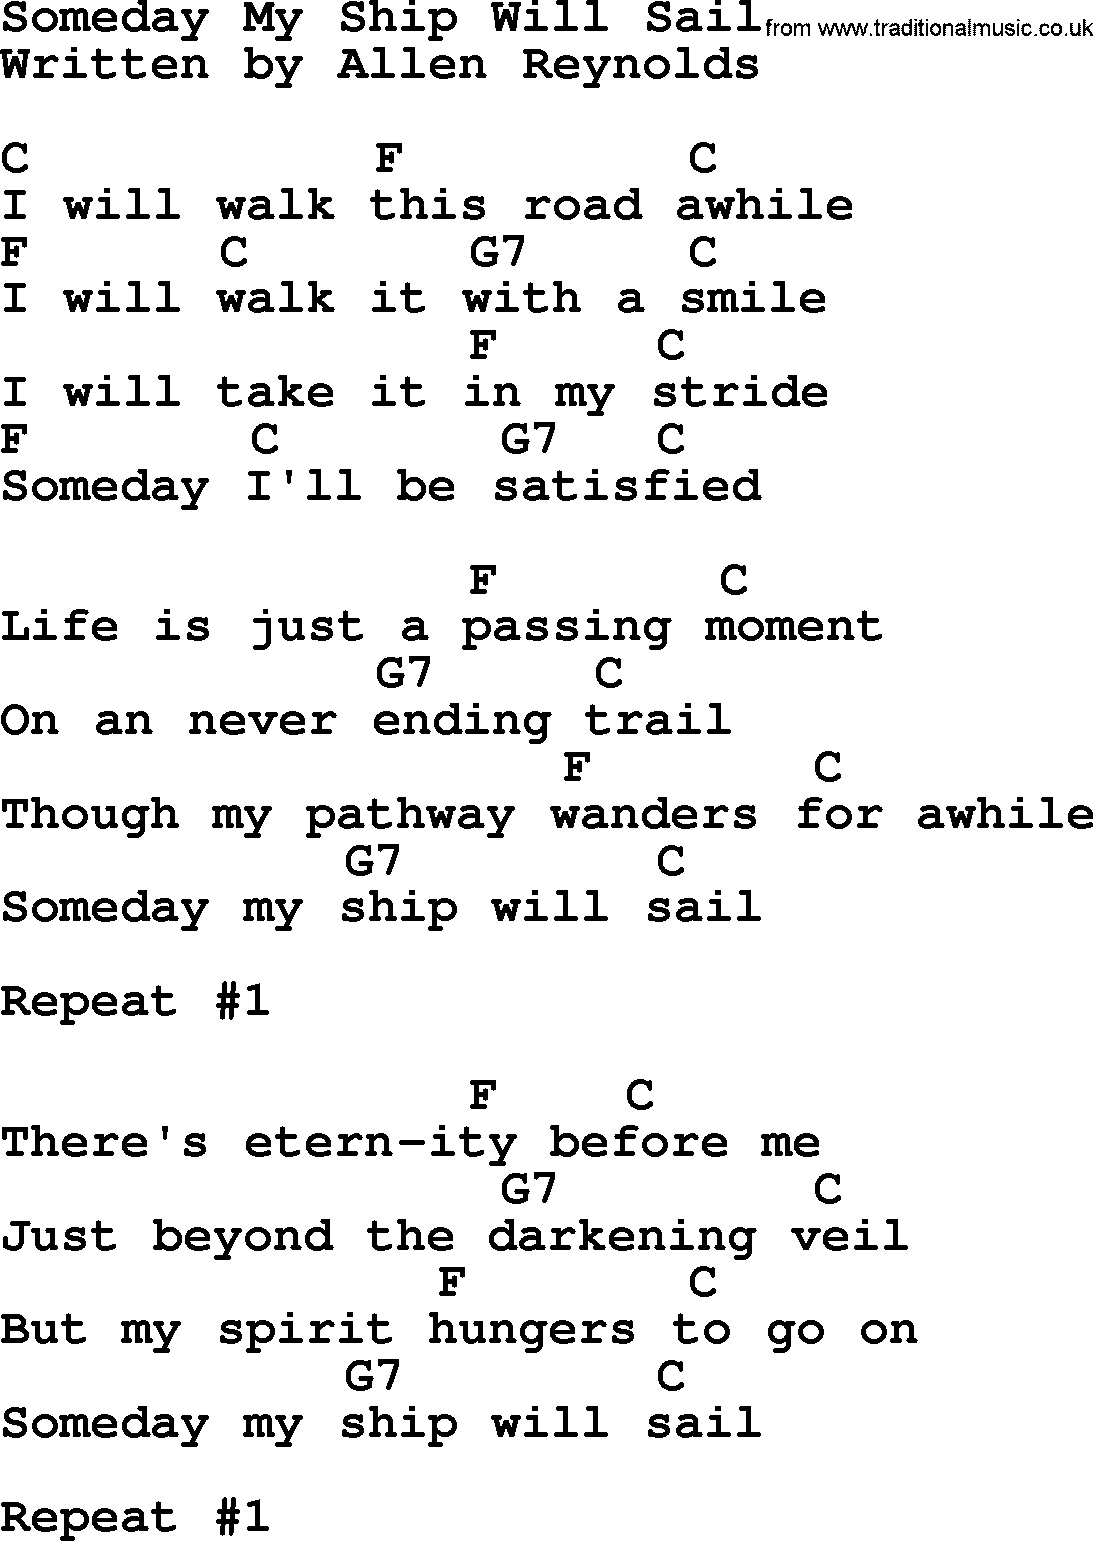 Johnny cash song someday my ship will sail lyrics and chords johnny cash song someday my ship will sail lyrics and chords hexwebz Image collections